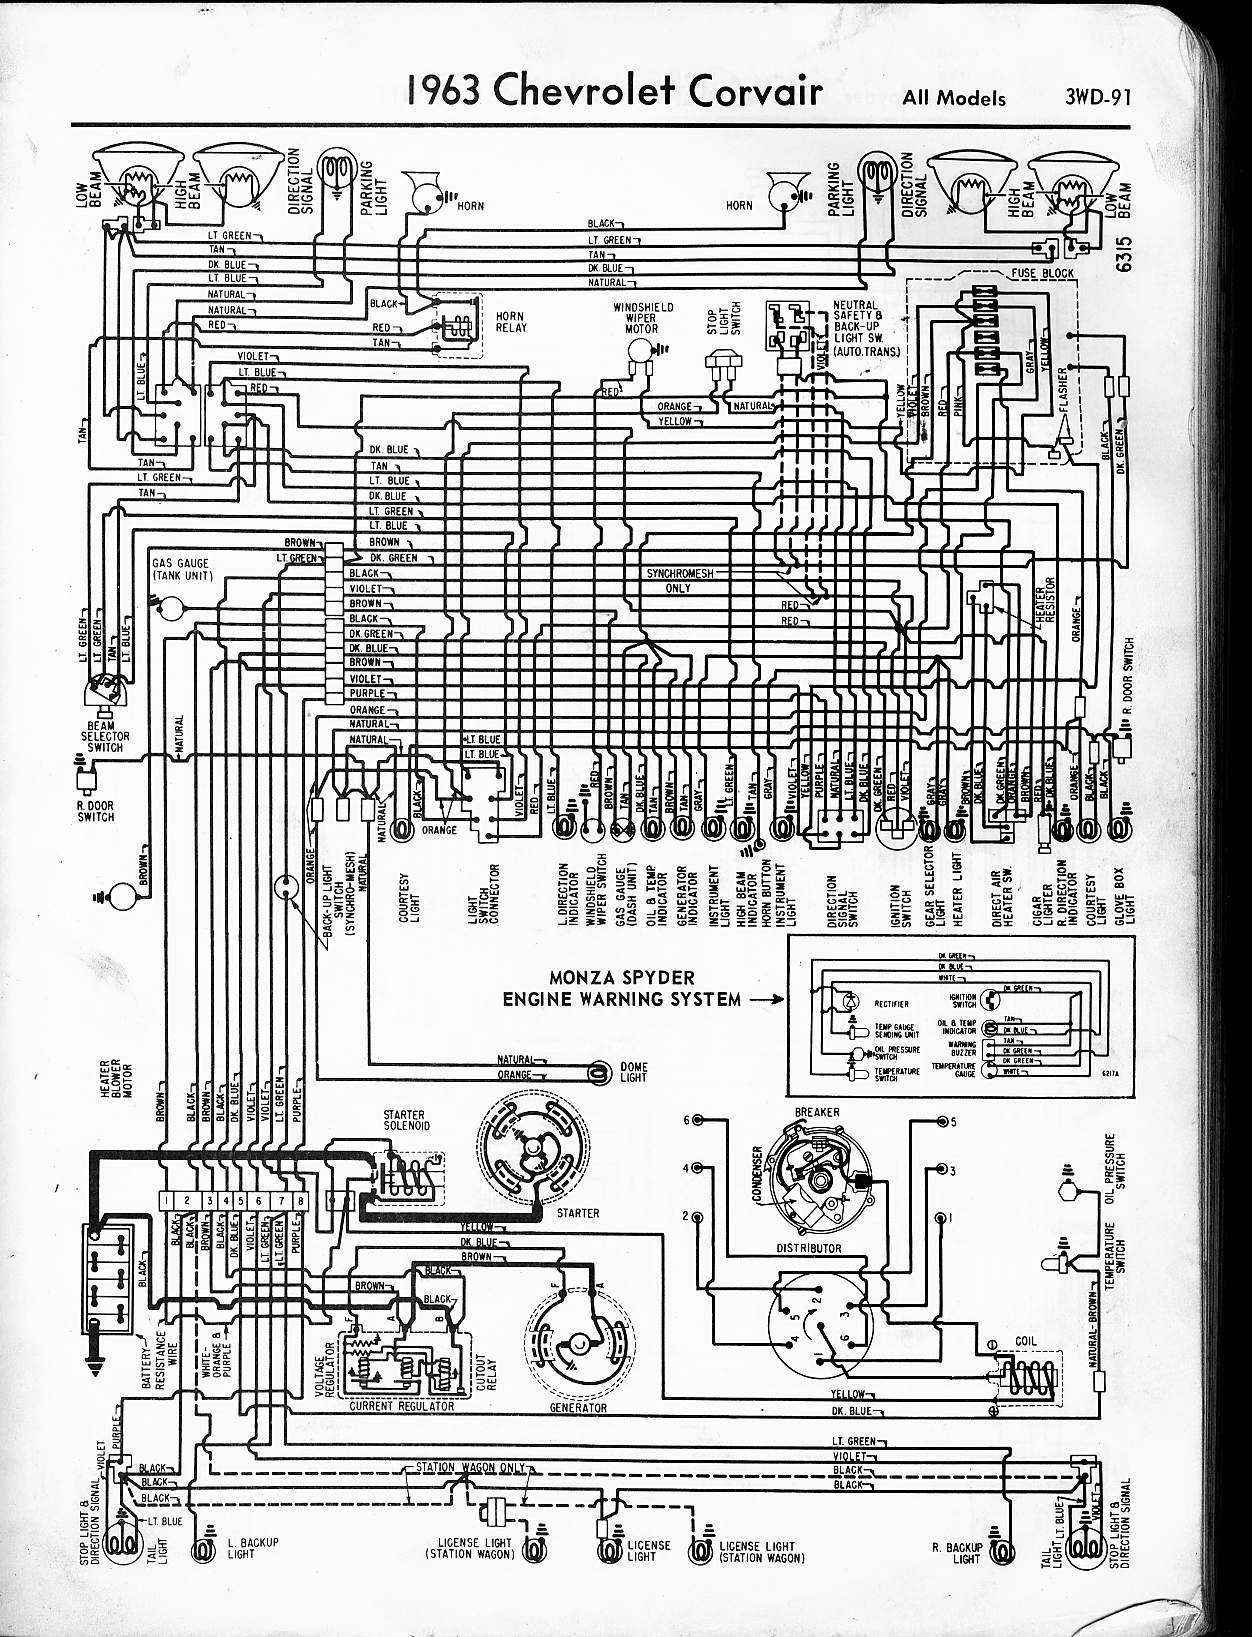 MWireChev63_3WD 091 57 65 chevy wiring diagrams 1963 chevy nova wiring diagram at crackthecode.co